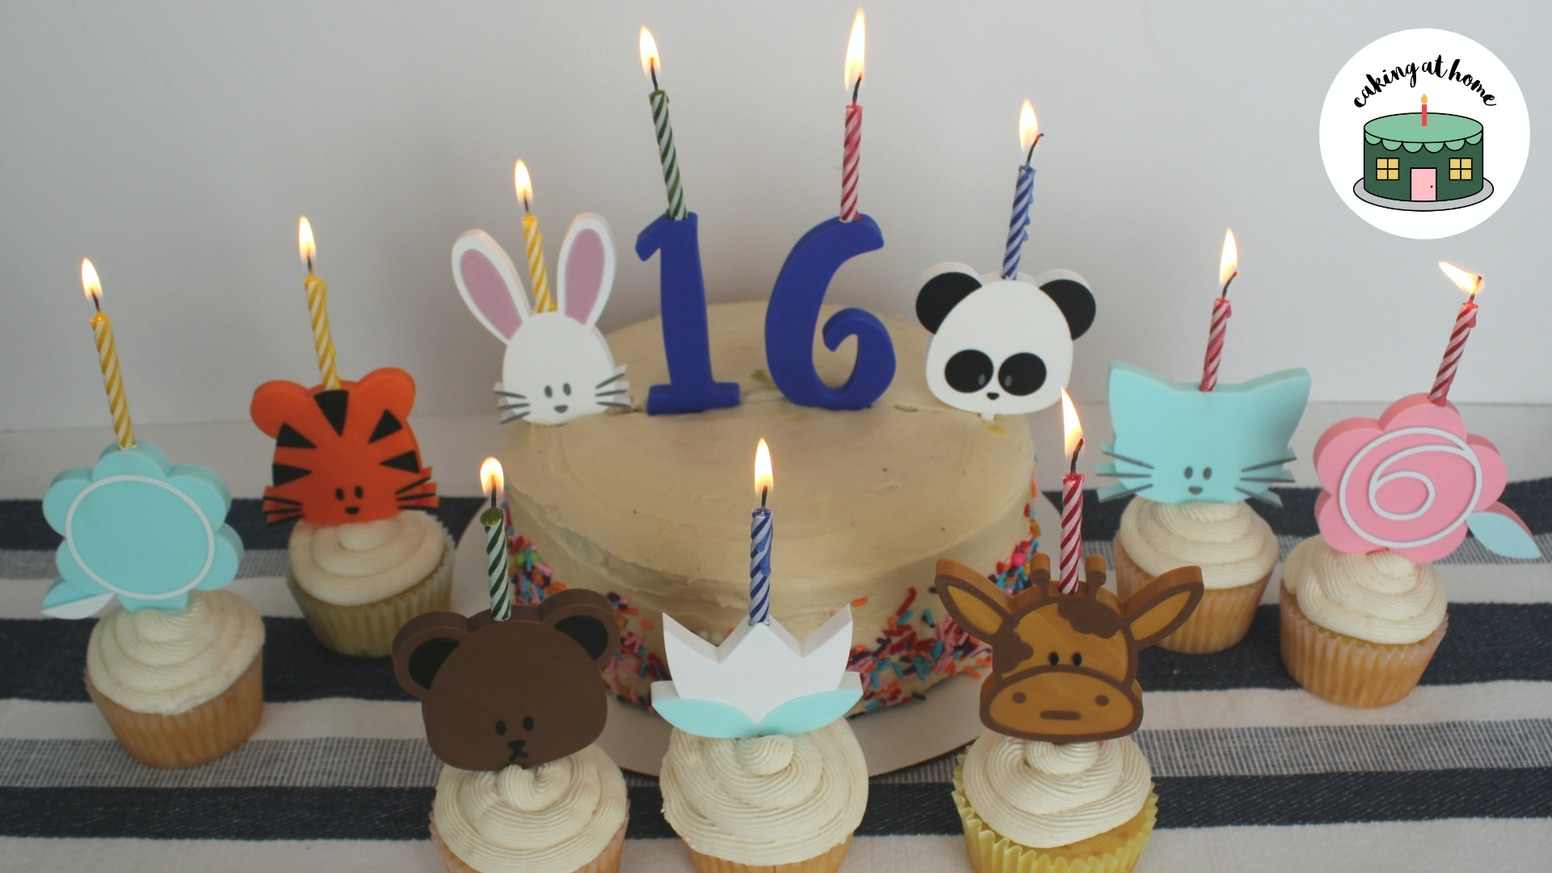 Light Up Your Next Celebration With Candle Holding Cake Toppers Combining Something You Love